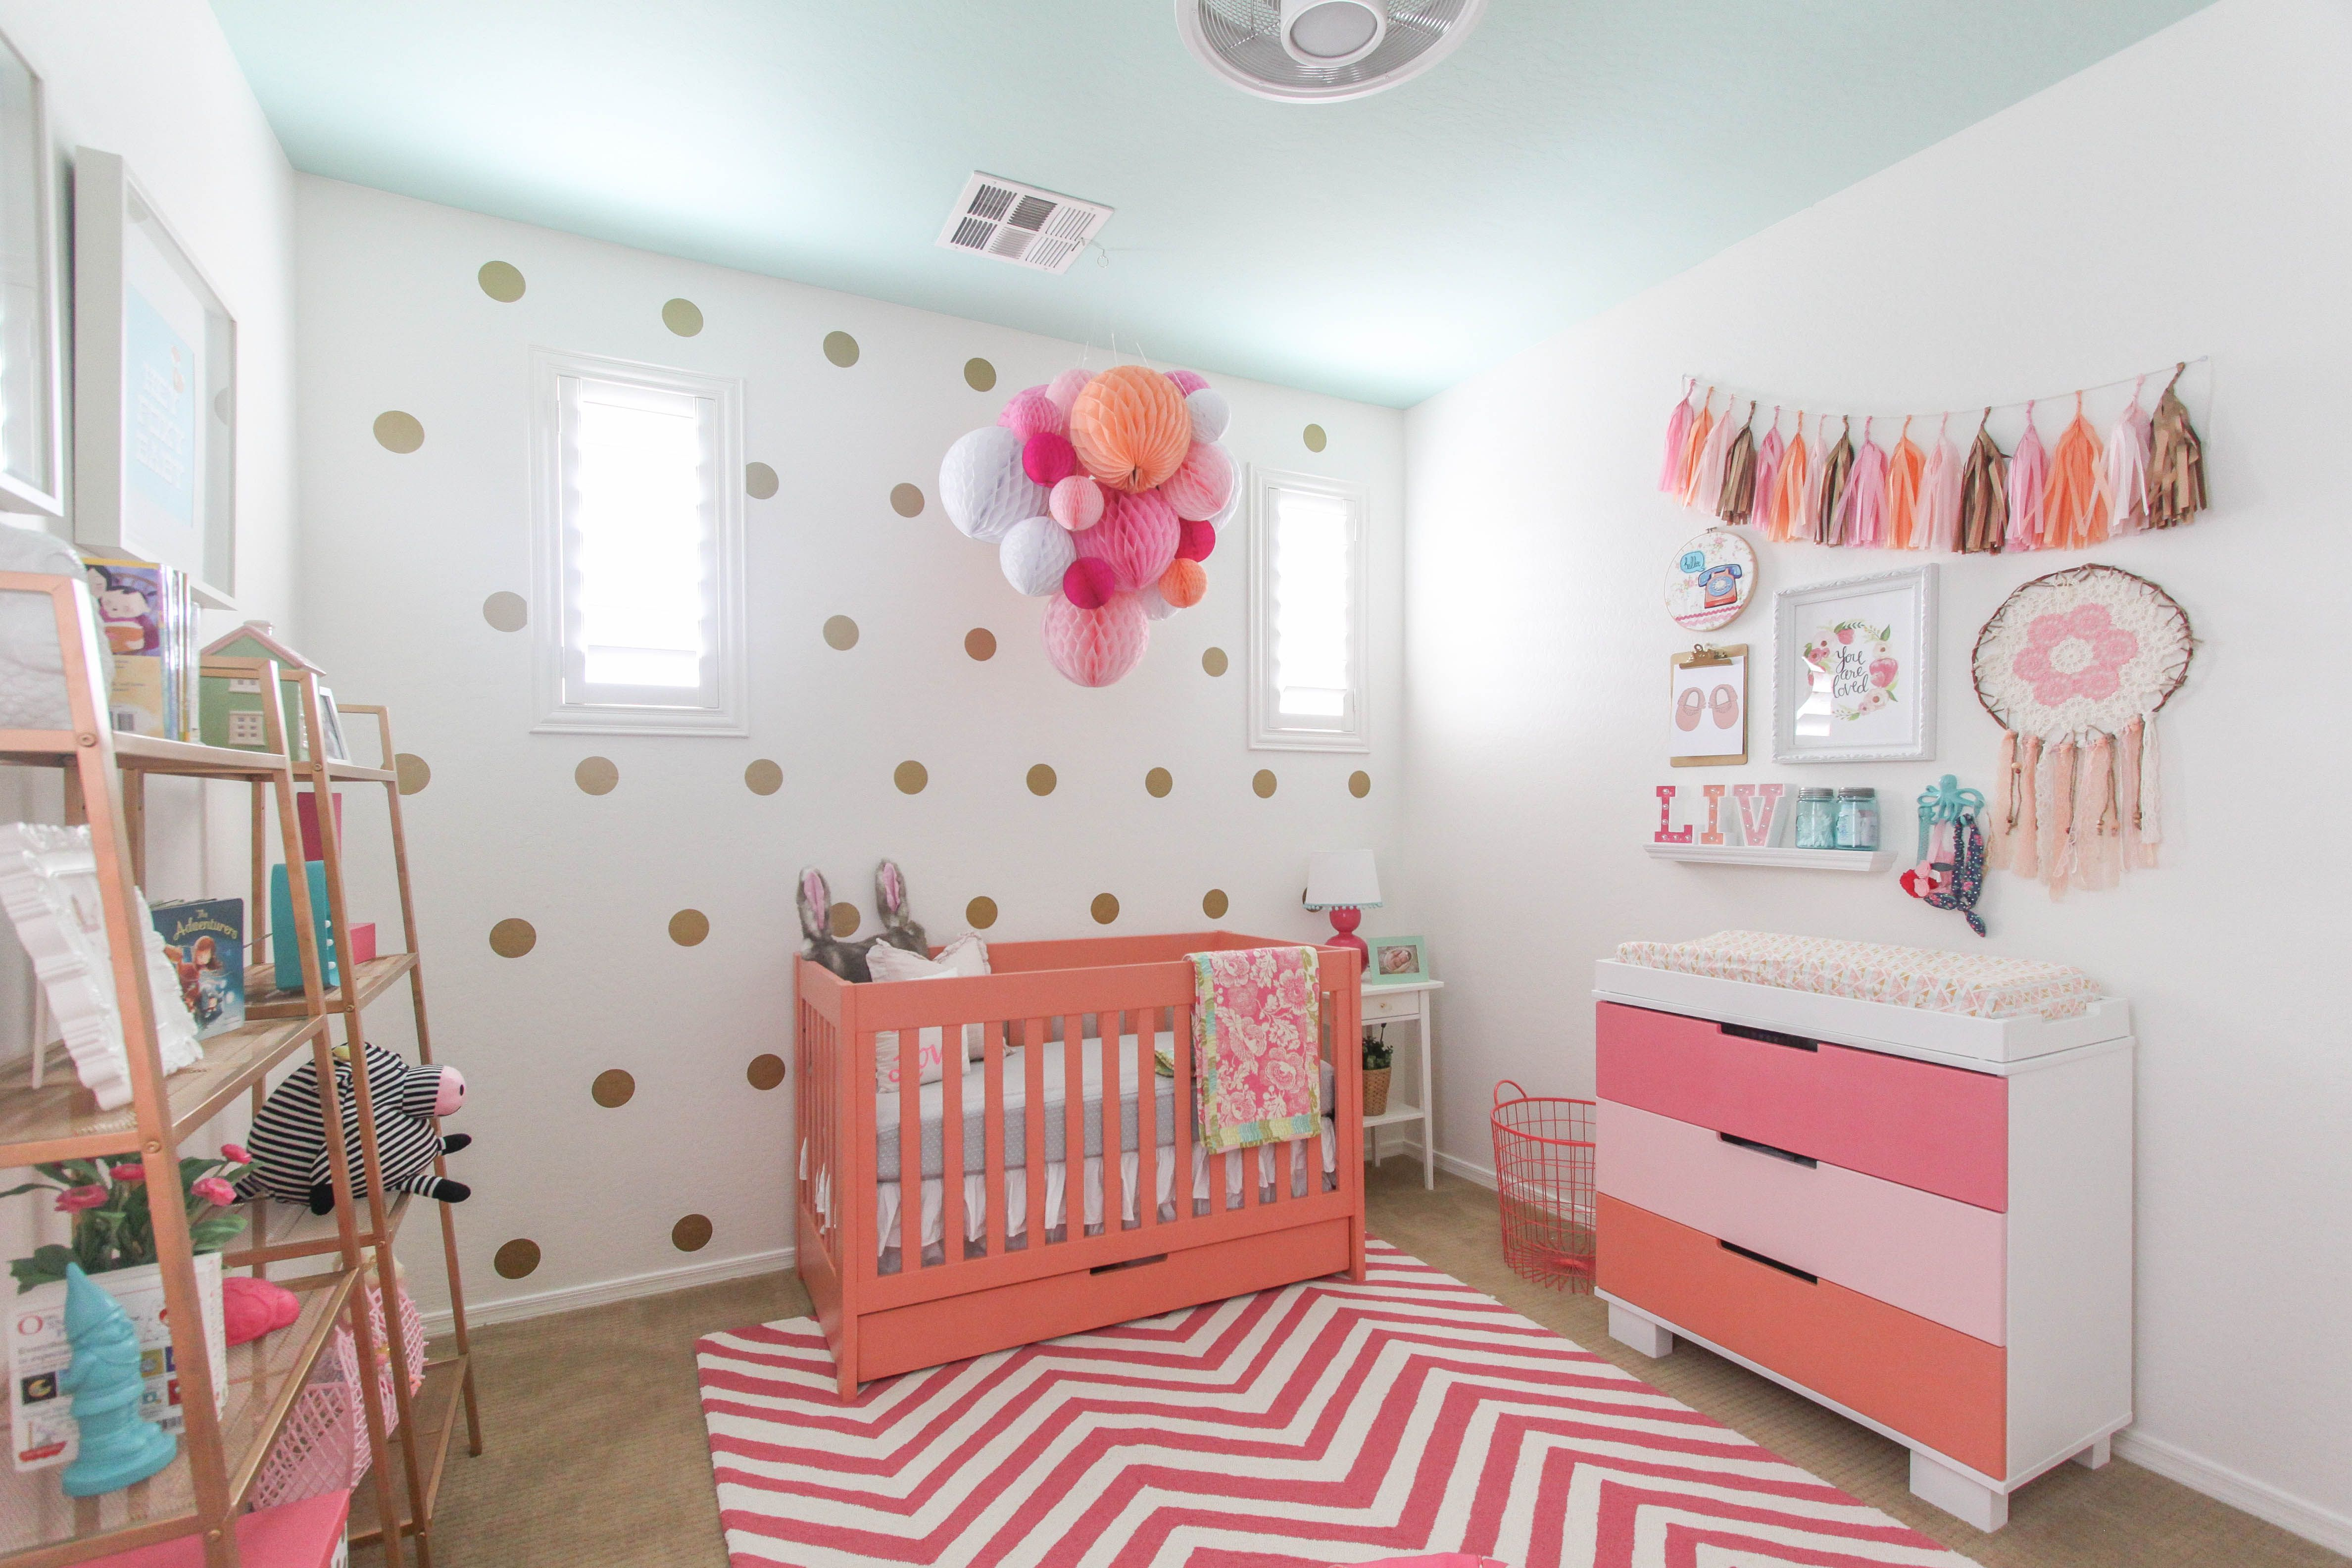 Design Reveal: Boho Chic Nursery | Project nursery and Nursery